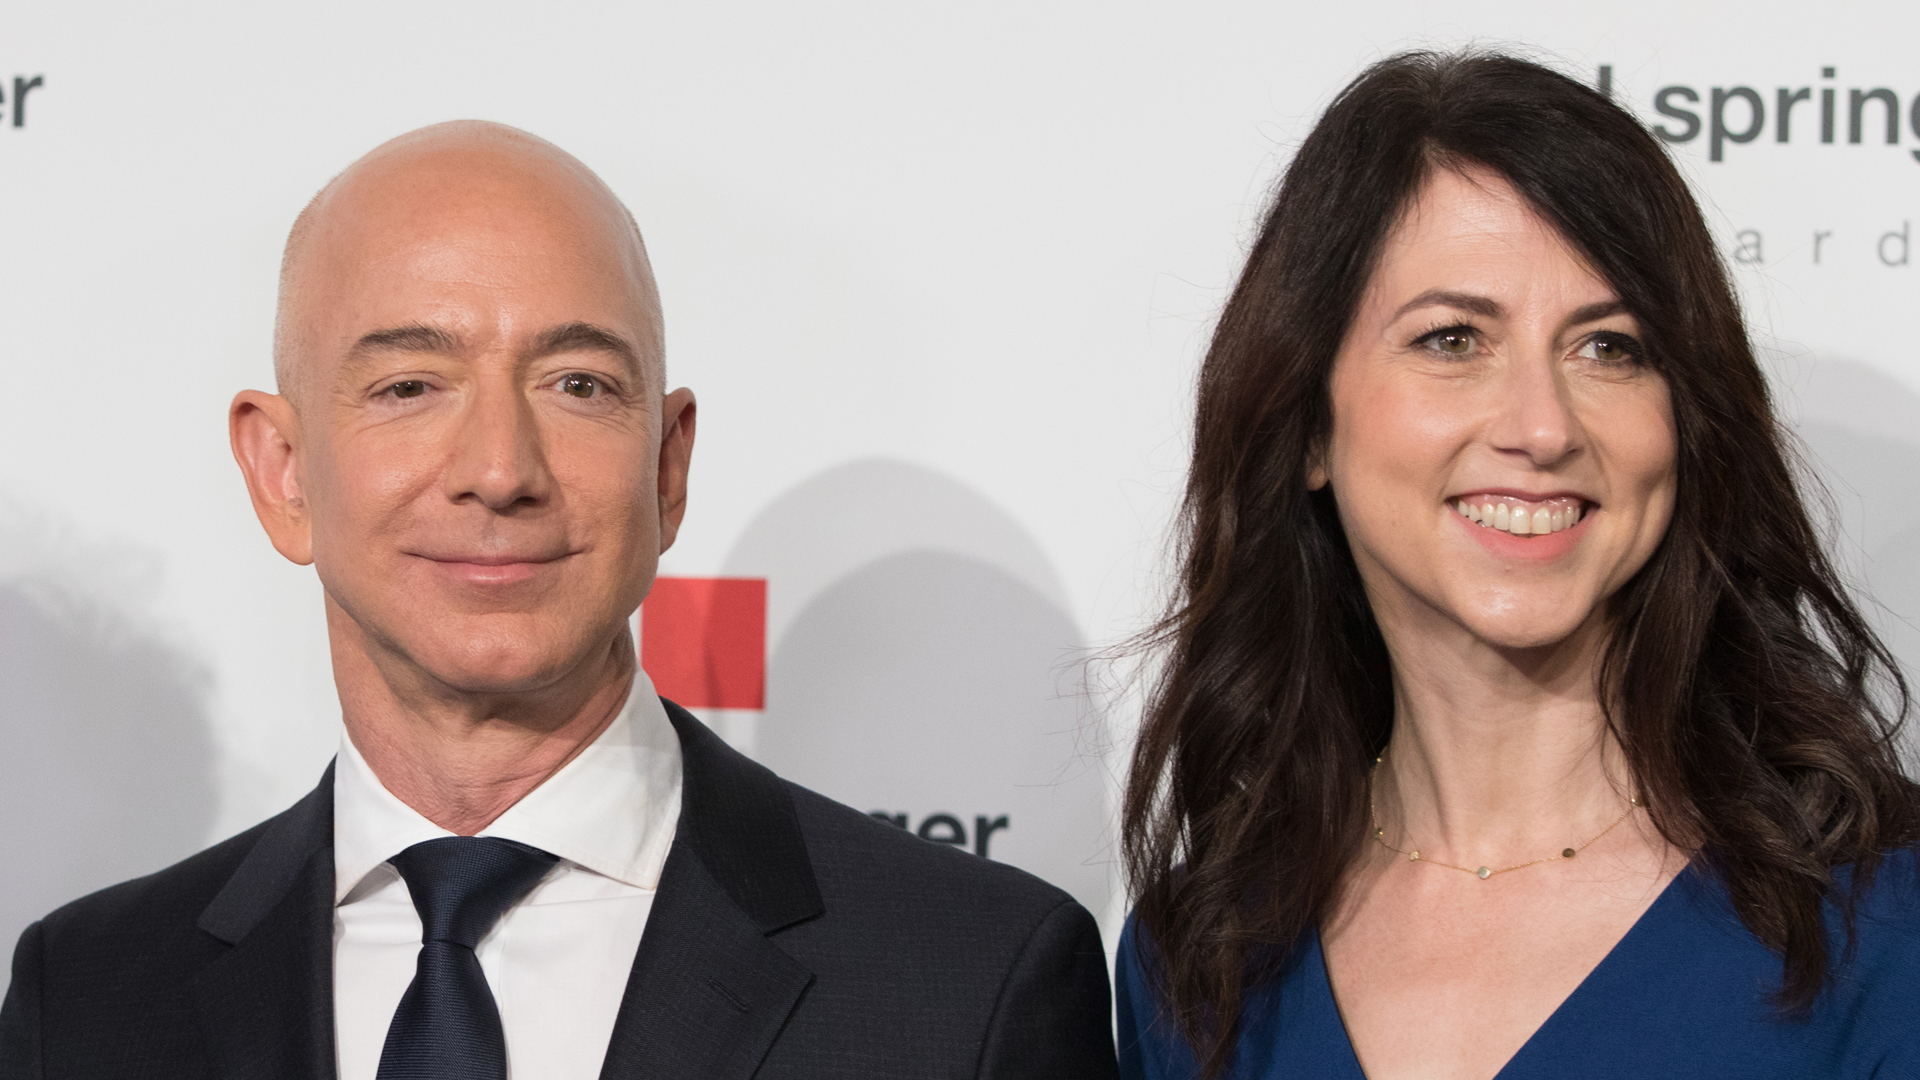 Amazon CEO Jeff Bezos and his wife MacKenzie Bezos arrive at the headquarters of publisher Axel-Springer on April 24, 2018, in Berlin, Germany. (Credit: JORG CARSTENSEN/AFP/Getty Images)